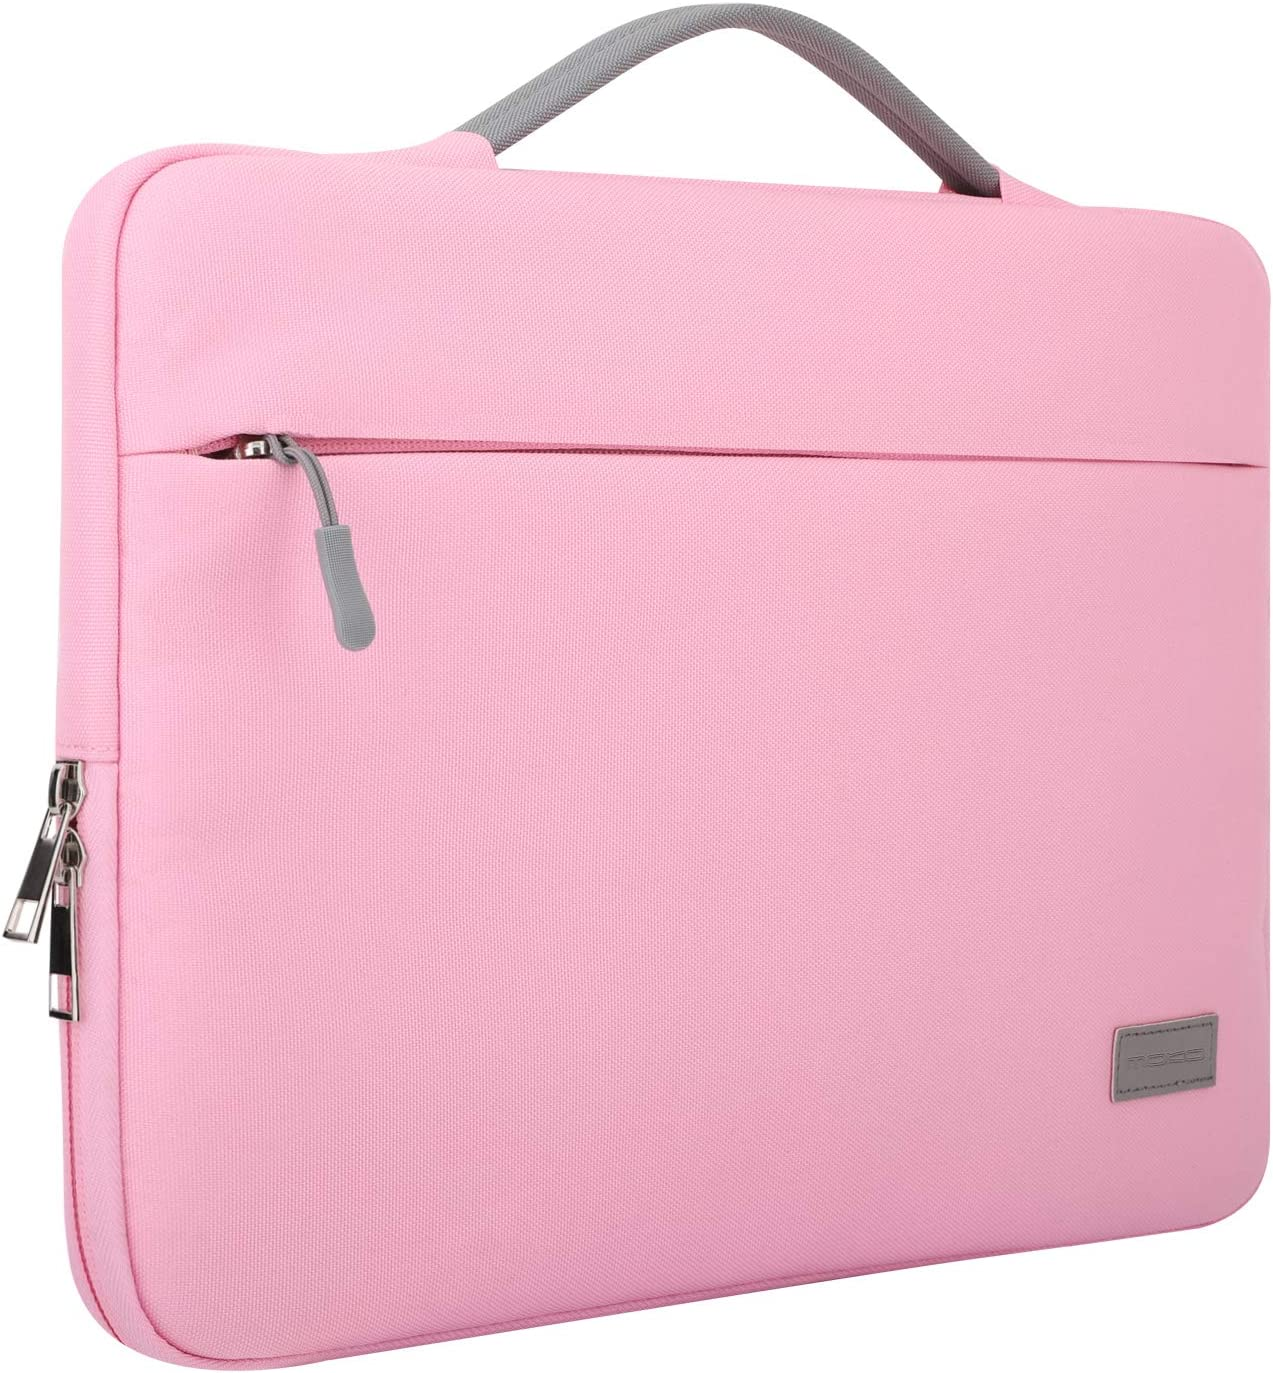 """MoKo 13-13.3 Inch Laptop Sleeve Case Compatible with MacBook Air 13-inch Retina, MacBook Pro 13"""", HP Dell Asus Acer Lenove Notebook Computer, Protective Carrying Bag with Pocket, Pink"""